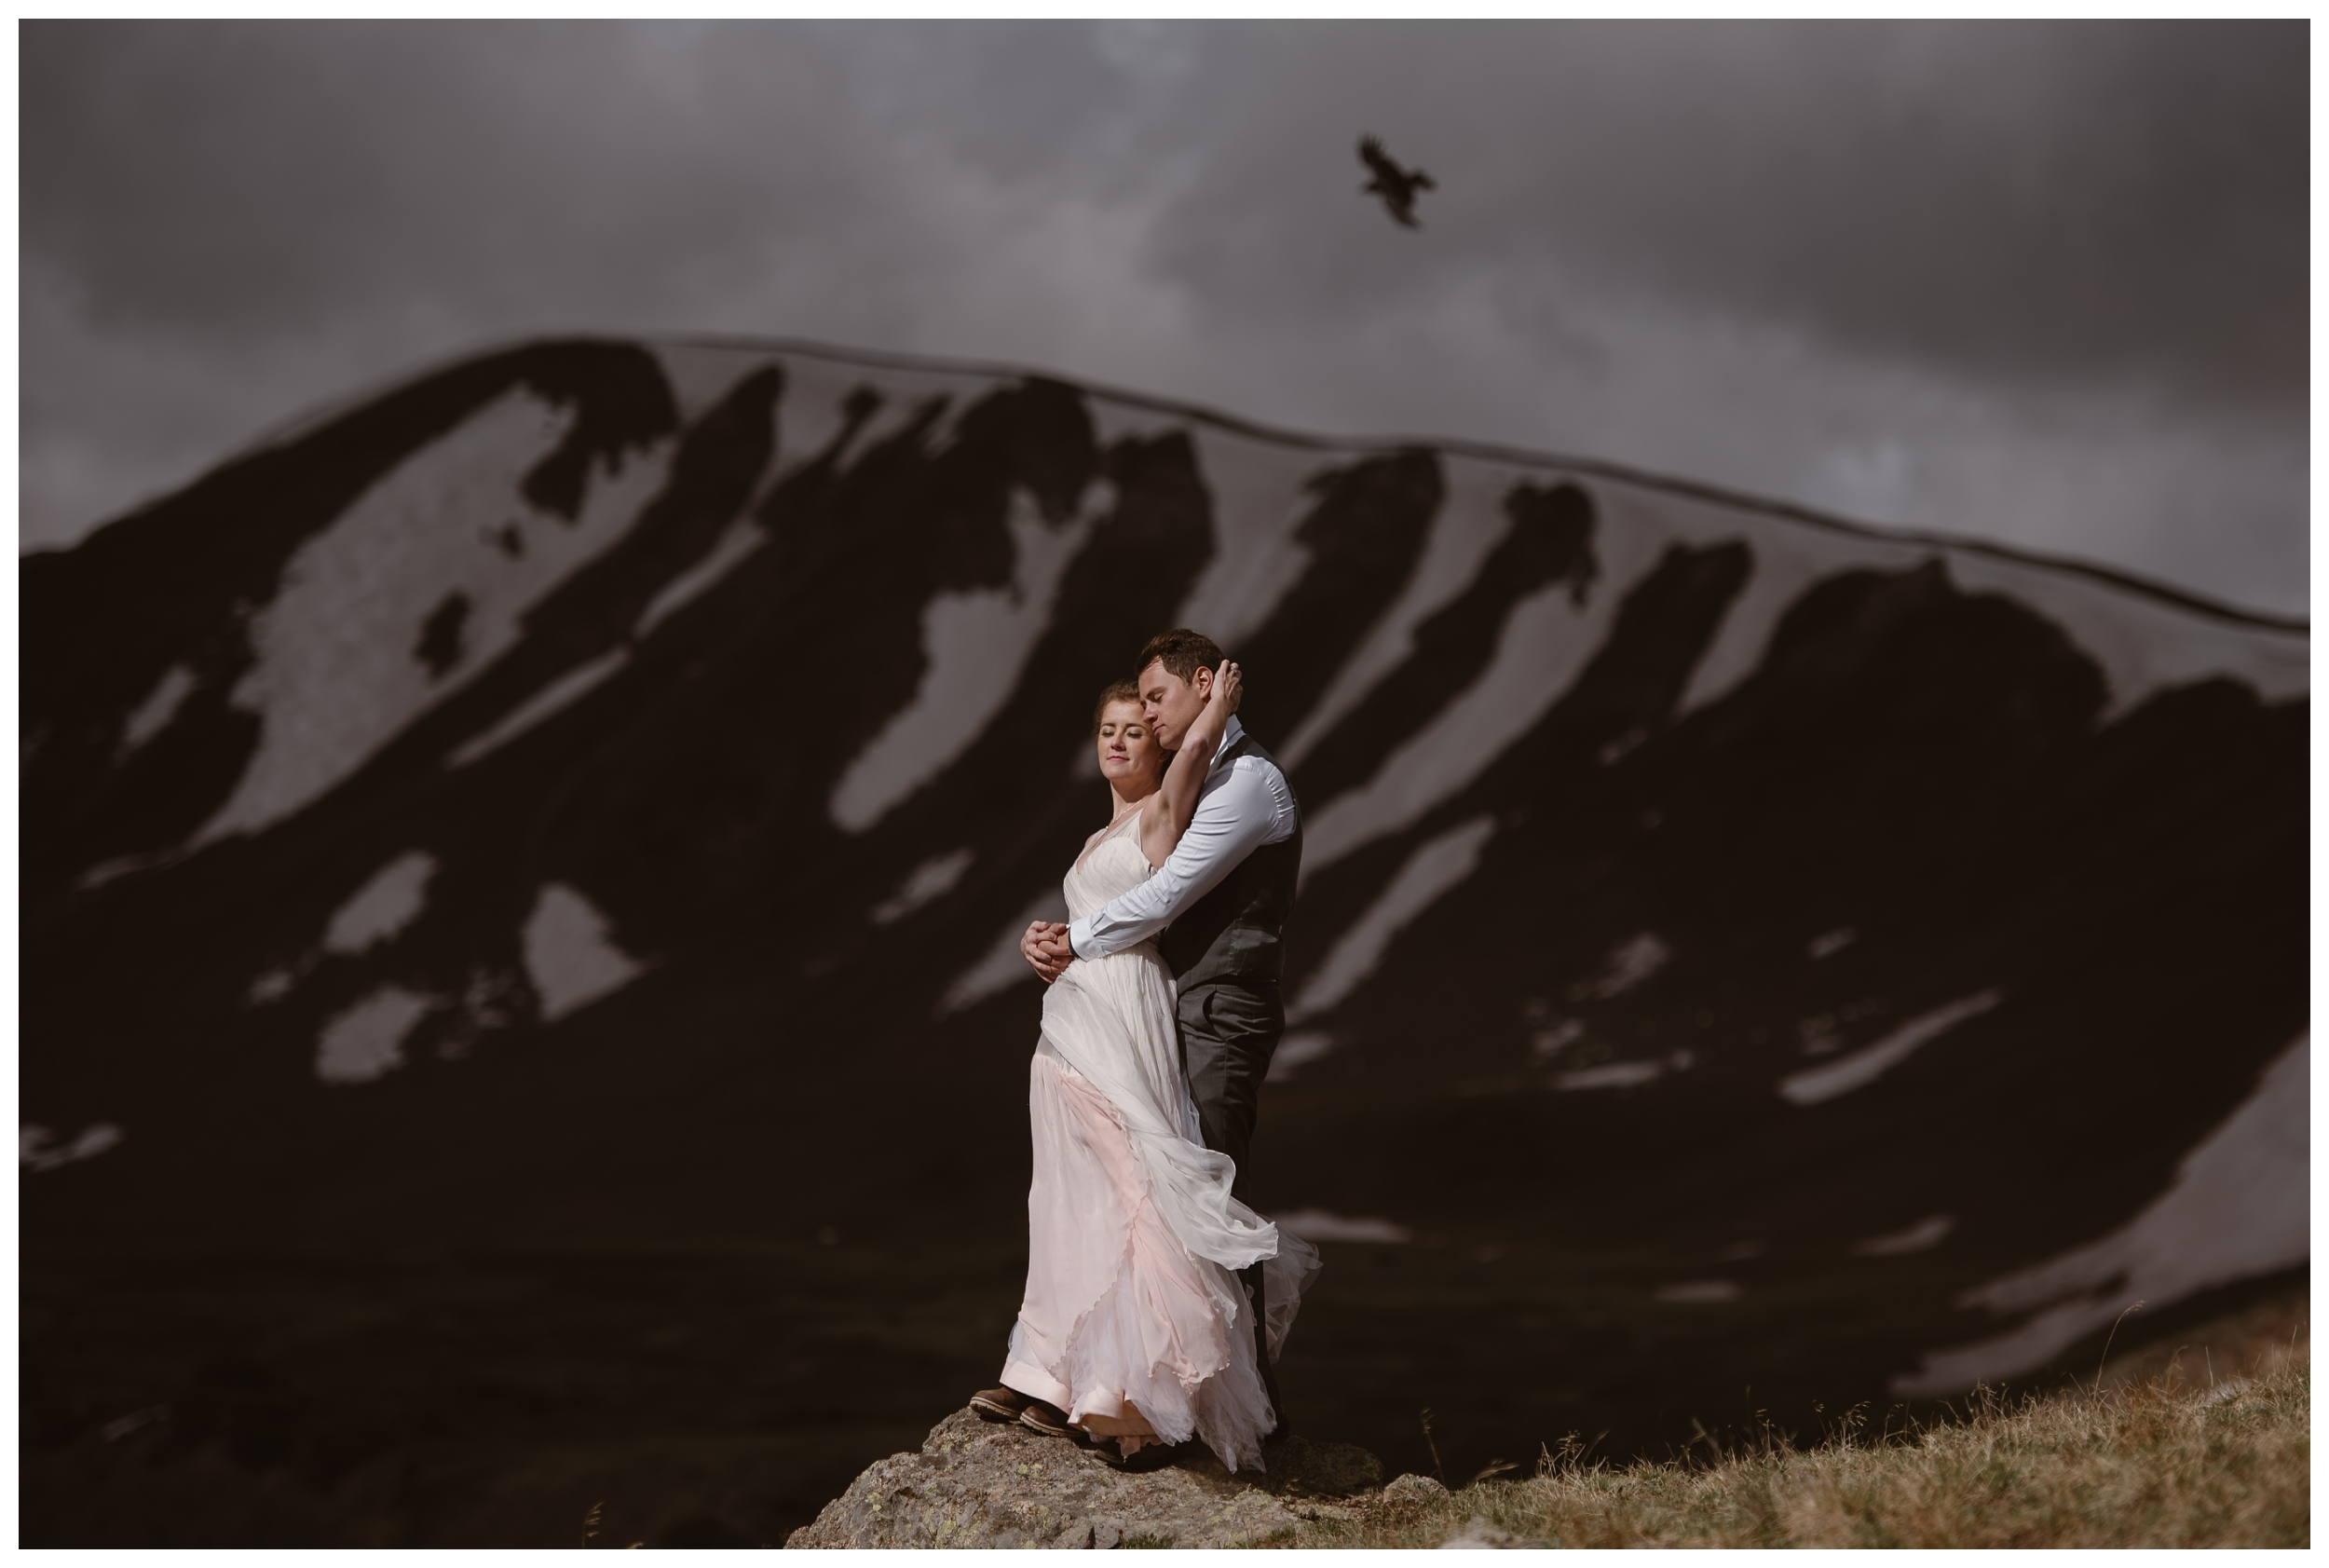 Marcela and Vasily embrace at the top of Independence Pass following their self solemnizing elopement as a bird flies behind them. Photo by Maddie Mae, Adventure Instead.